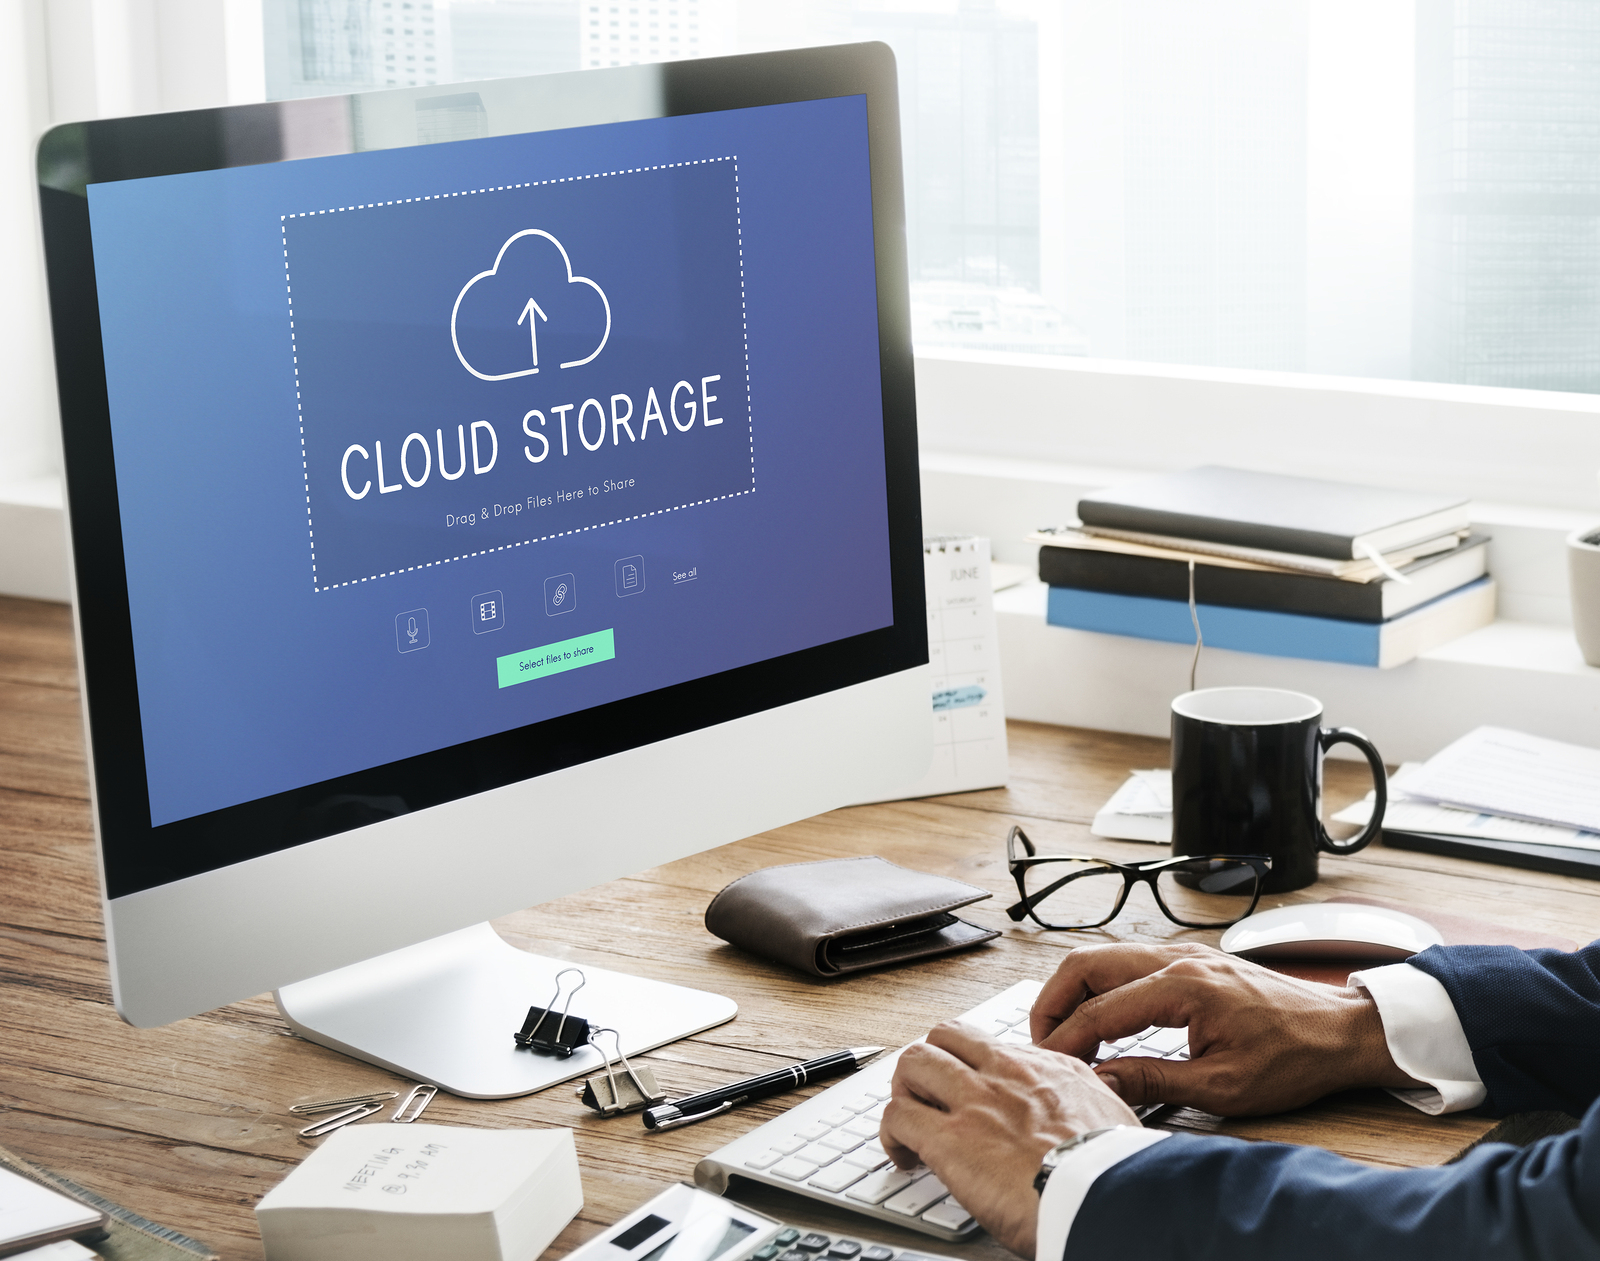 cloud storage business, business solutions, cloud computing for businesses